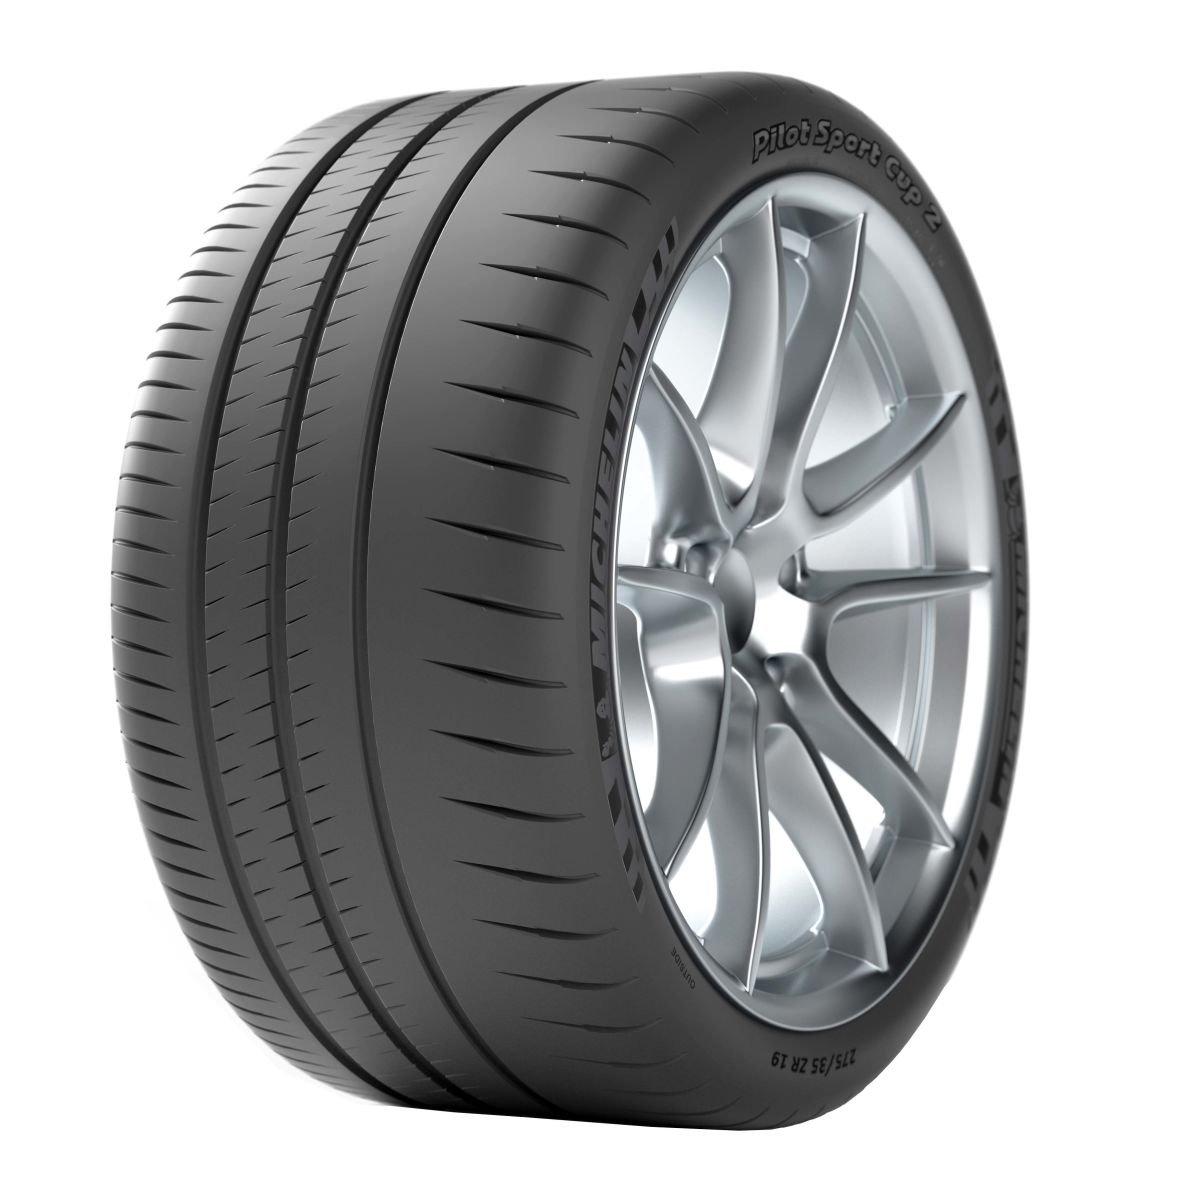 345/30R19 109Y, Michelin, PILOT SPORT CUP 2